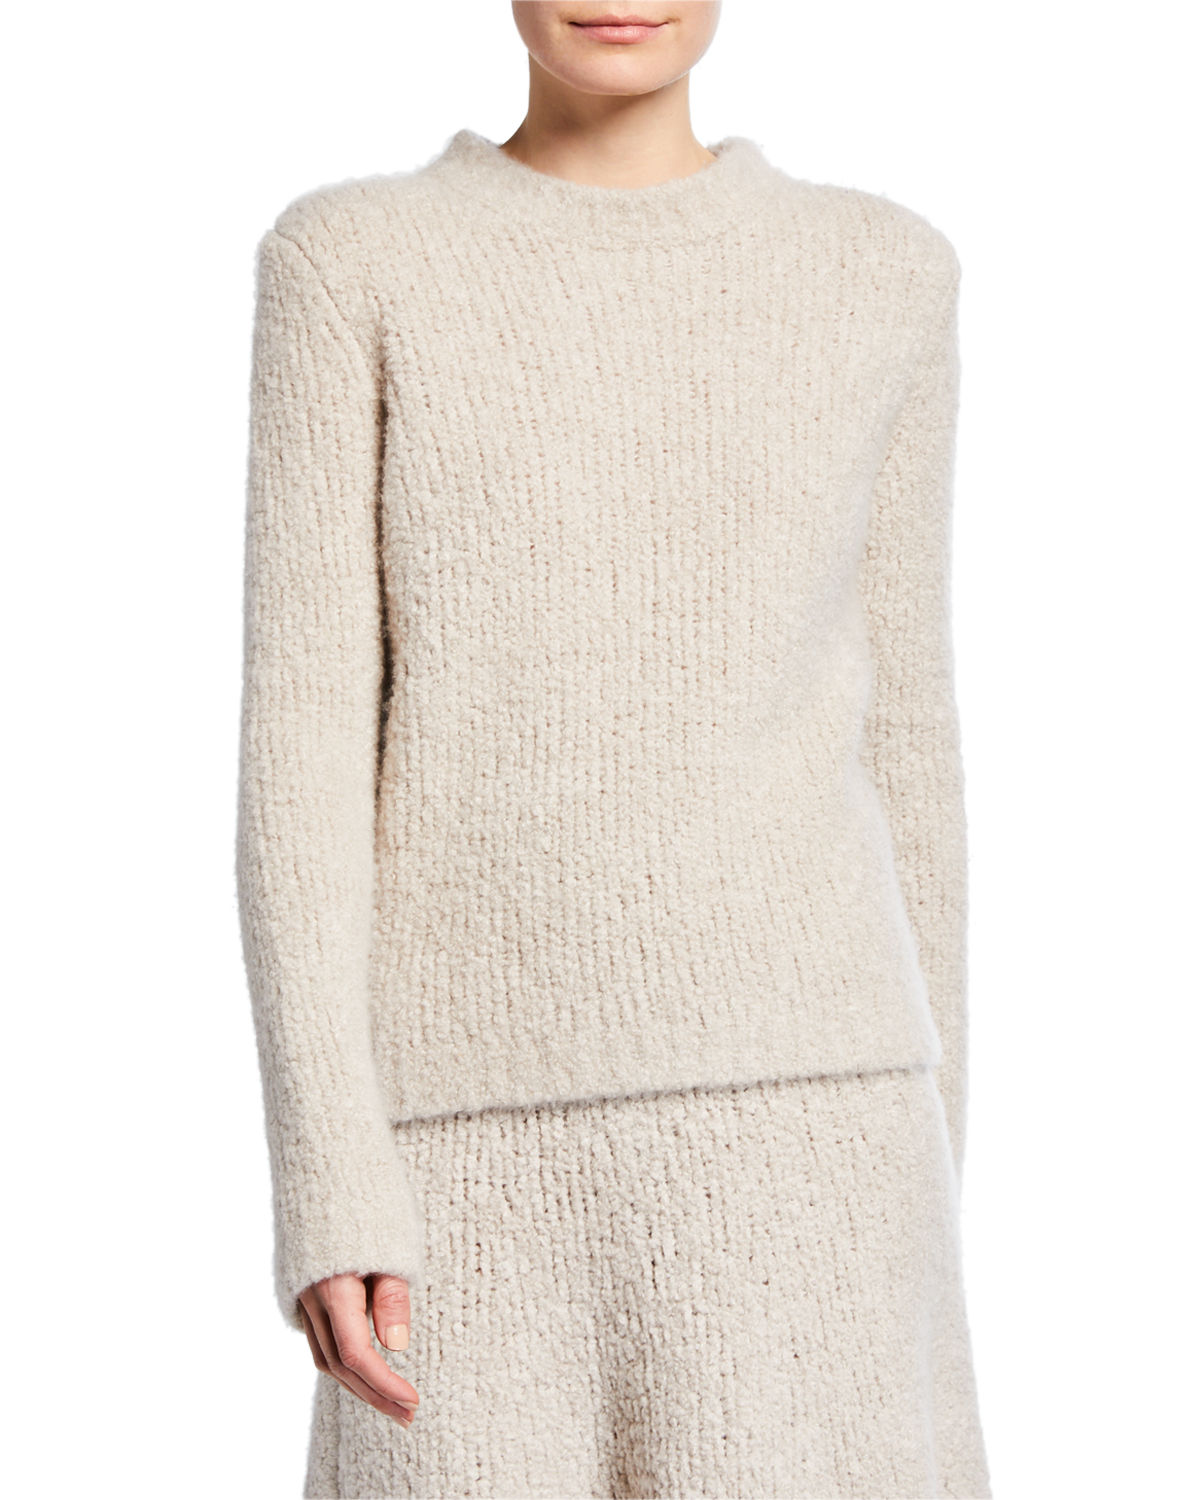 Gabriela Hearst Sweaters Philippe Cashmere Silk Boucle Sweater, LIGHT BEIGE